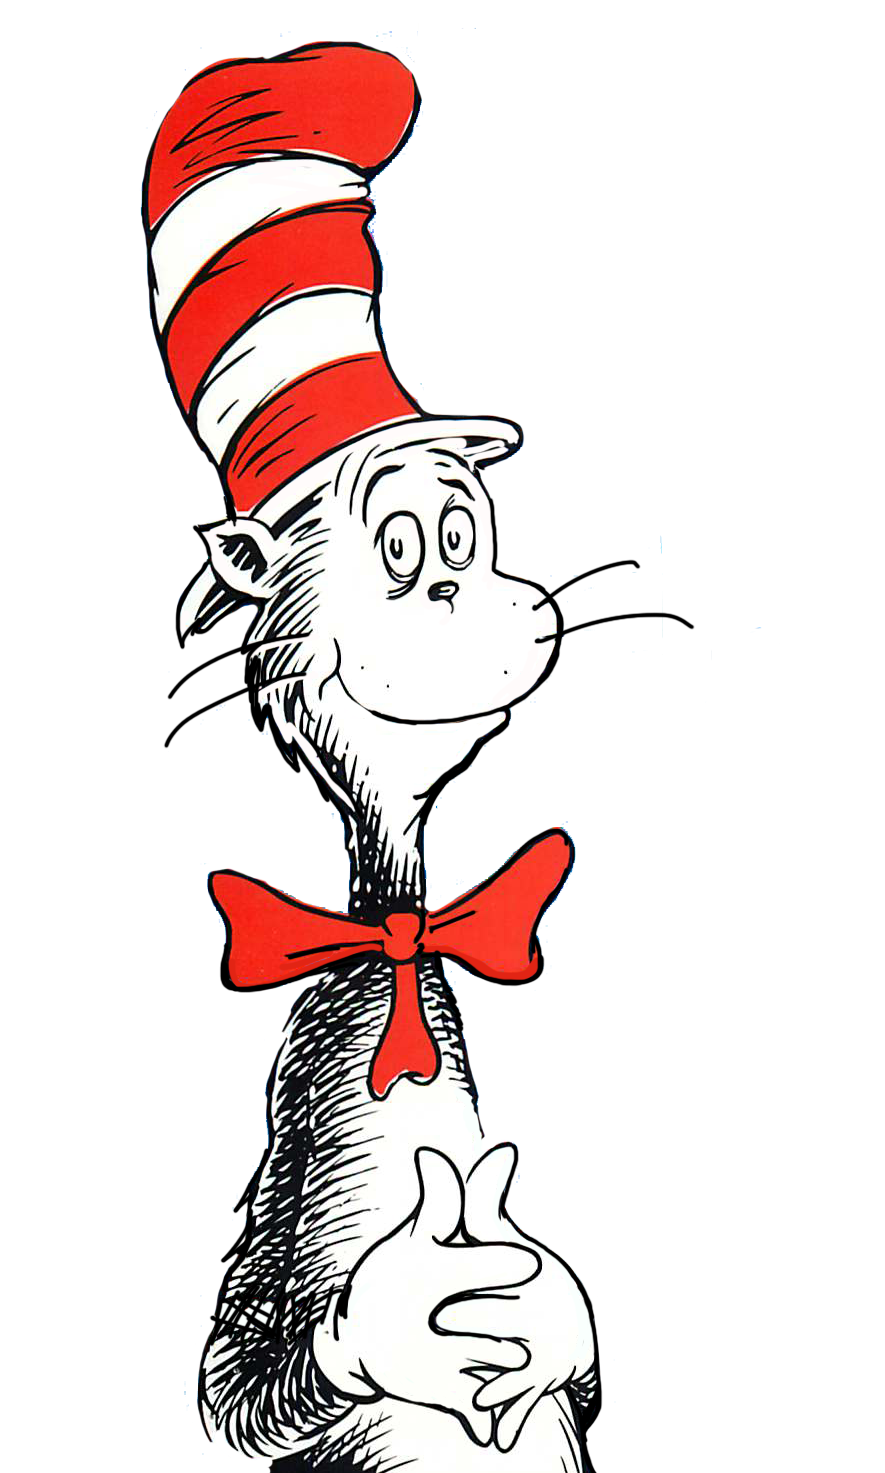 black and white See seussical live on. Dr seuss clipart